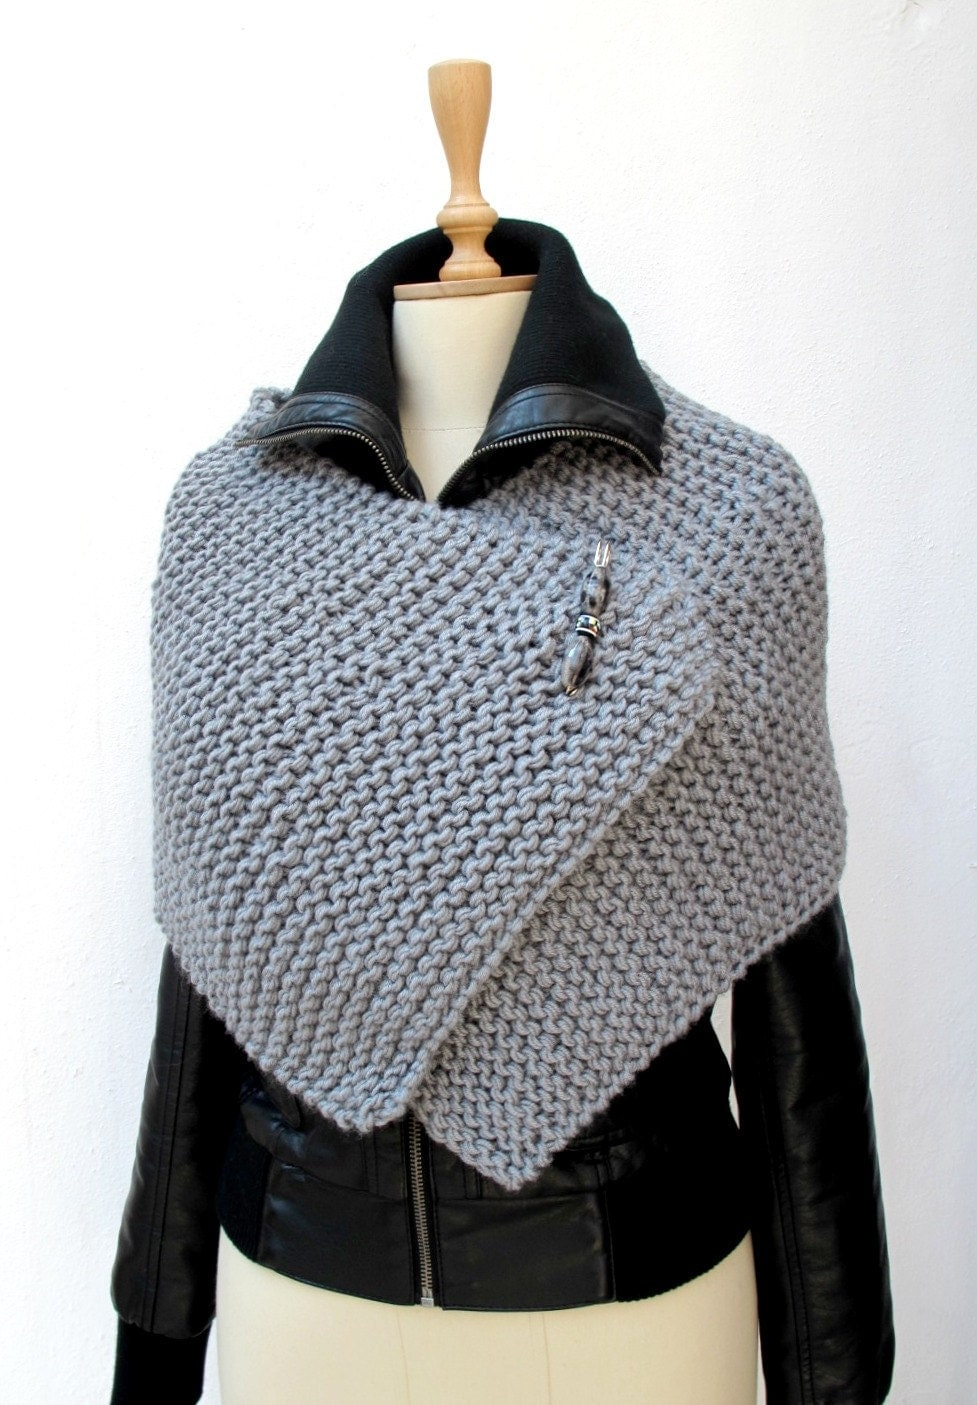 Knitting Pattern Wrap : CROCHETBUTTERFLY: Knitting Knit Knitted Capelet, Poncho Wrap Grey Chunky Spor...